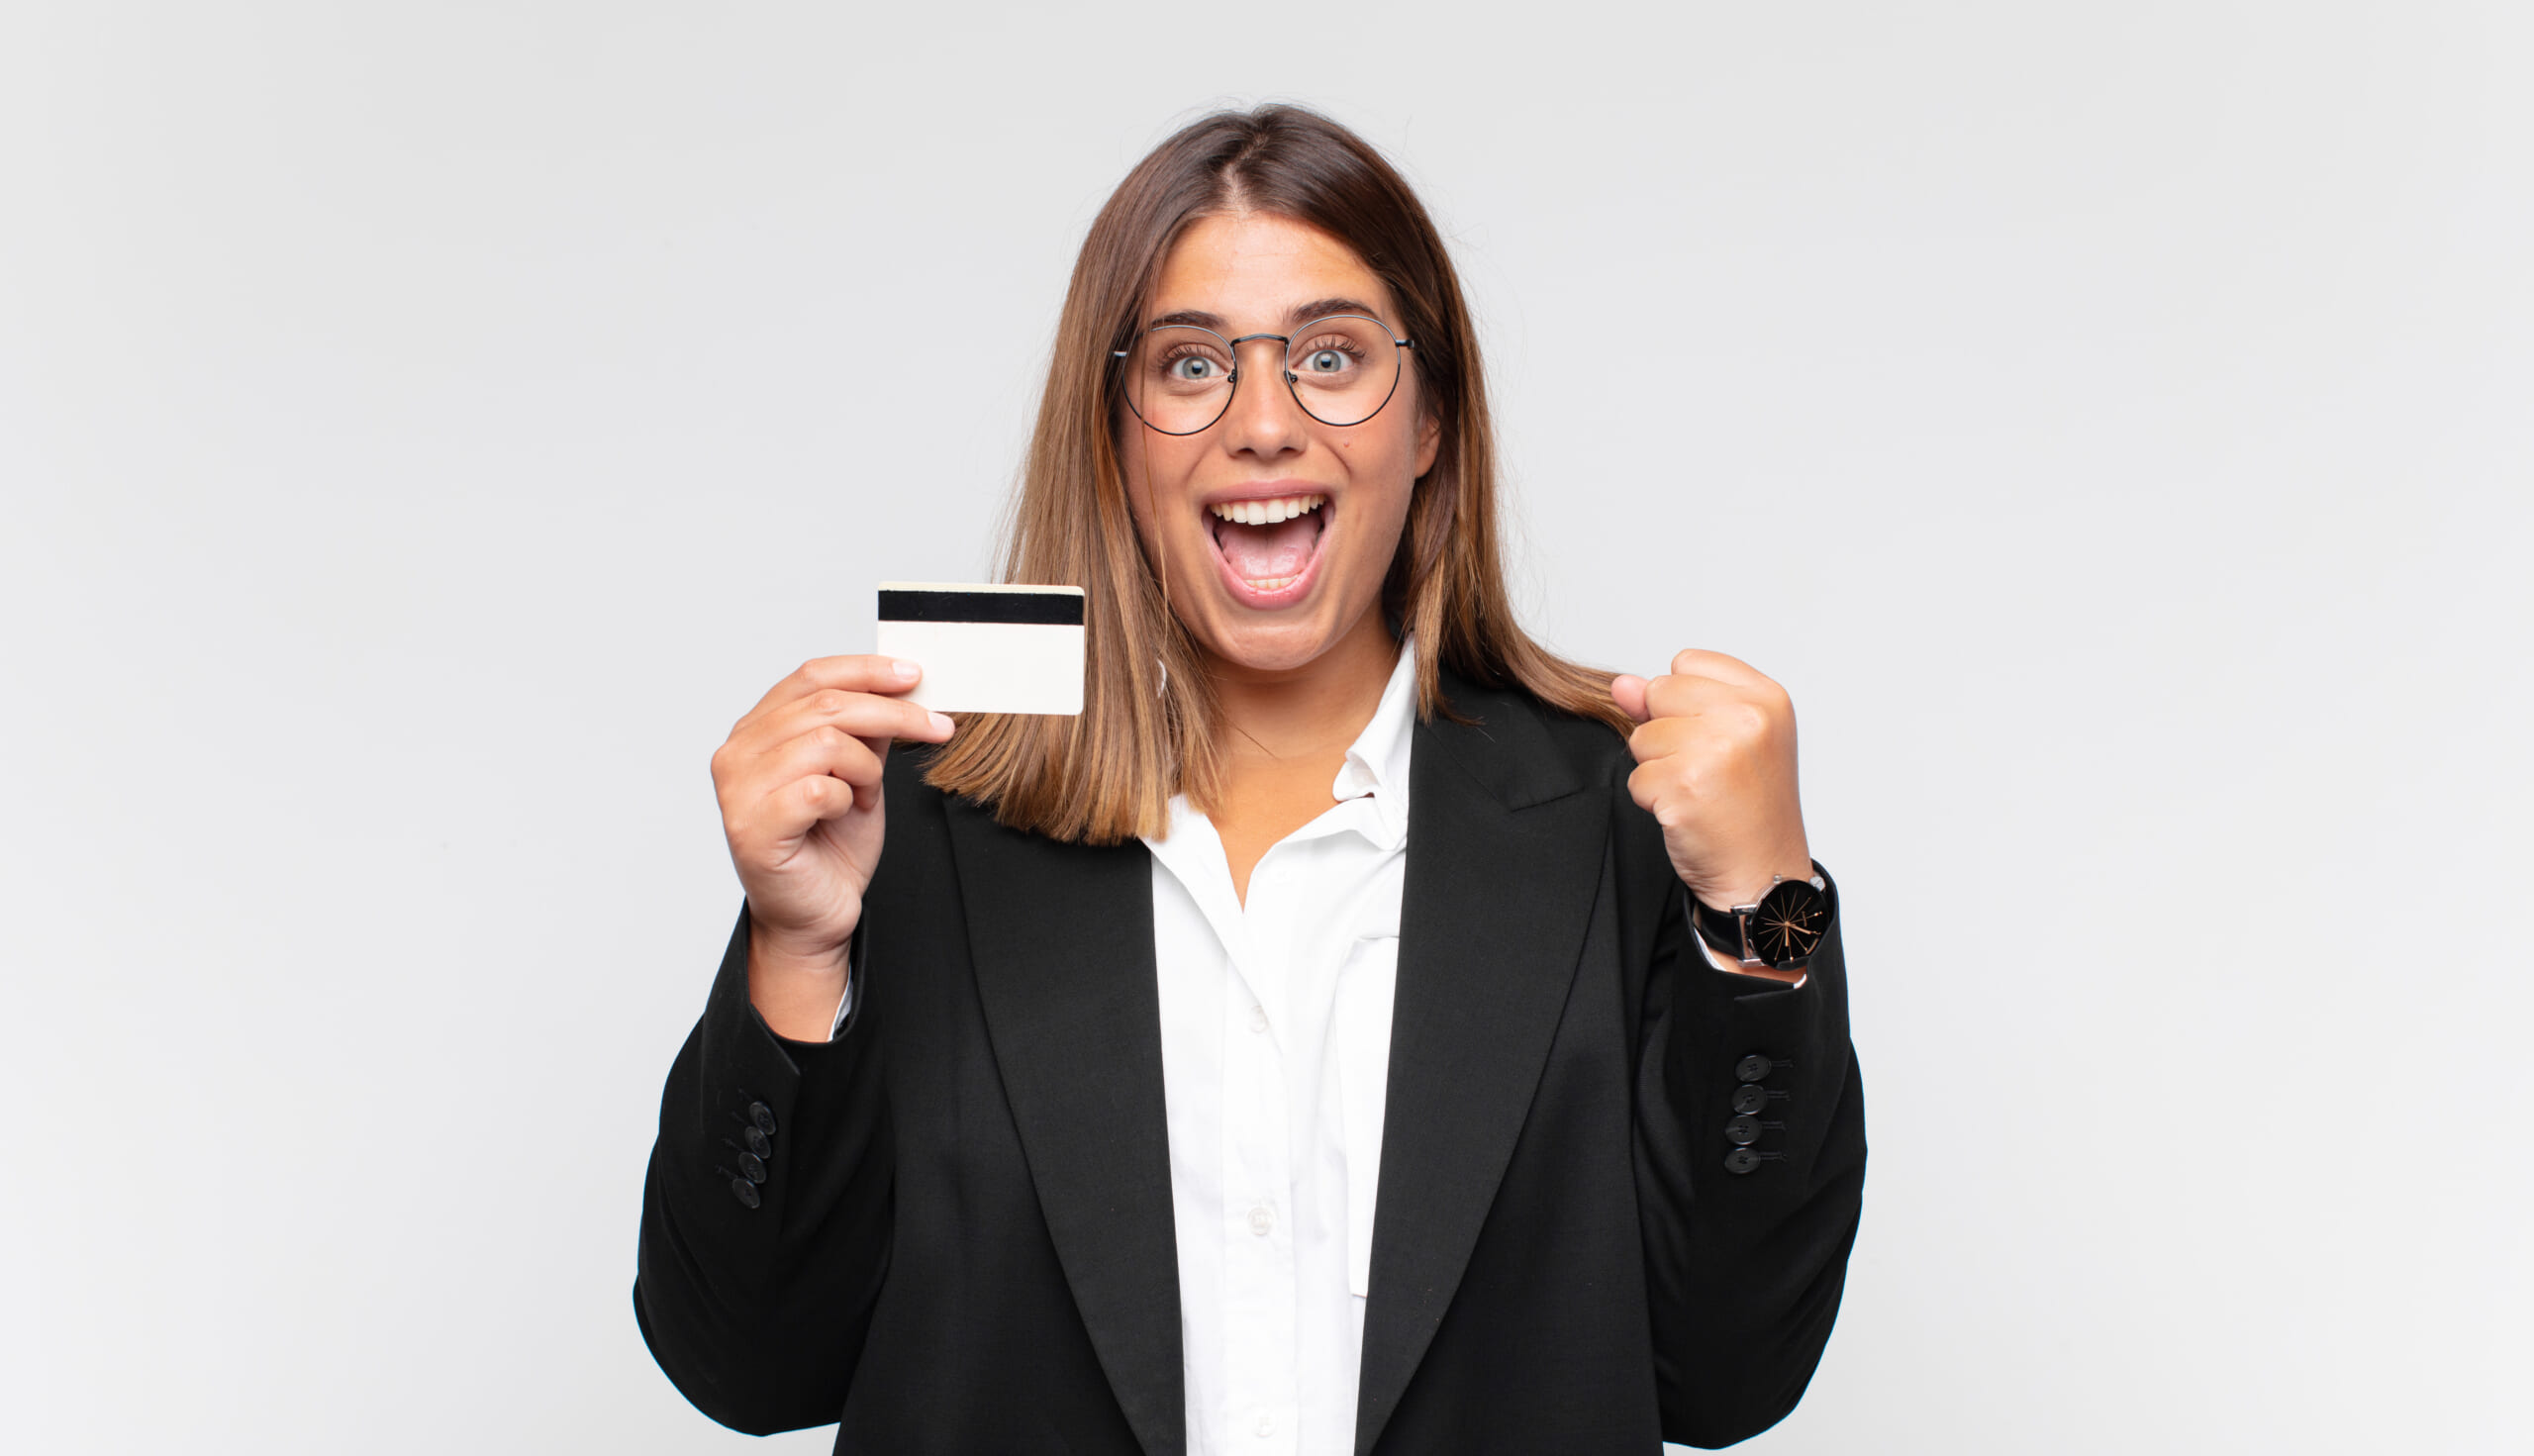 Young-woman-with-a-credit-card-feeling-shocked-excited-and-happy-laughing-and-celebrating-success-saying-wow.jpg